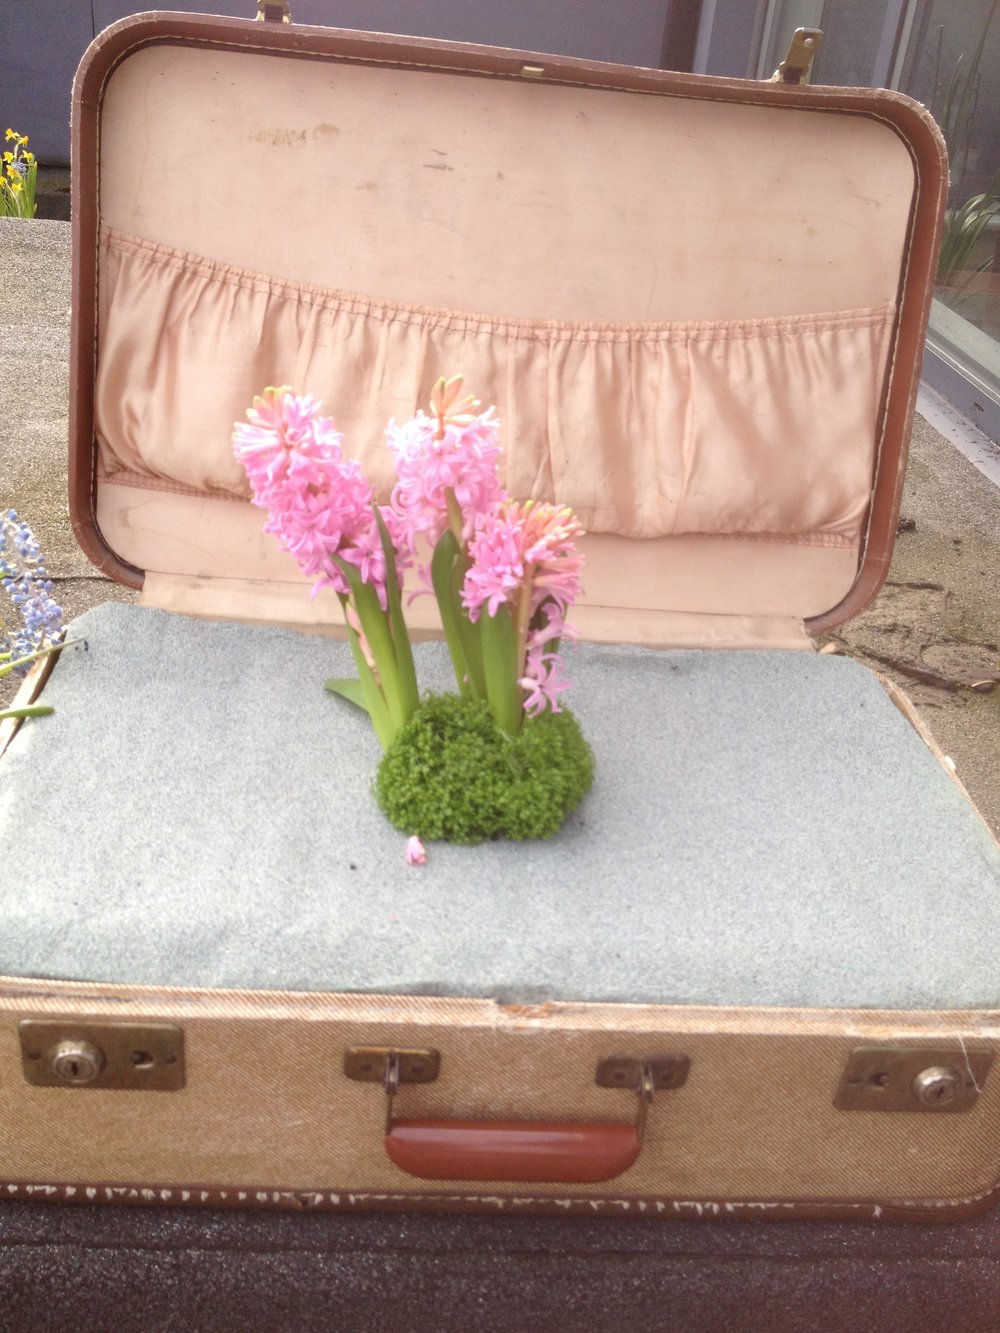 pothole garden in suitcase